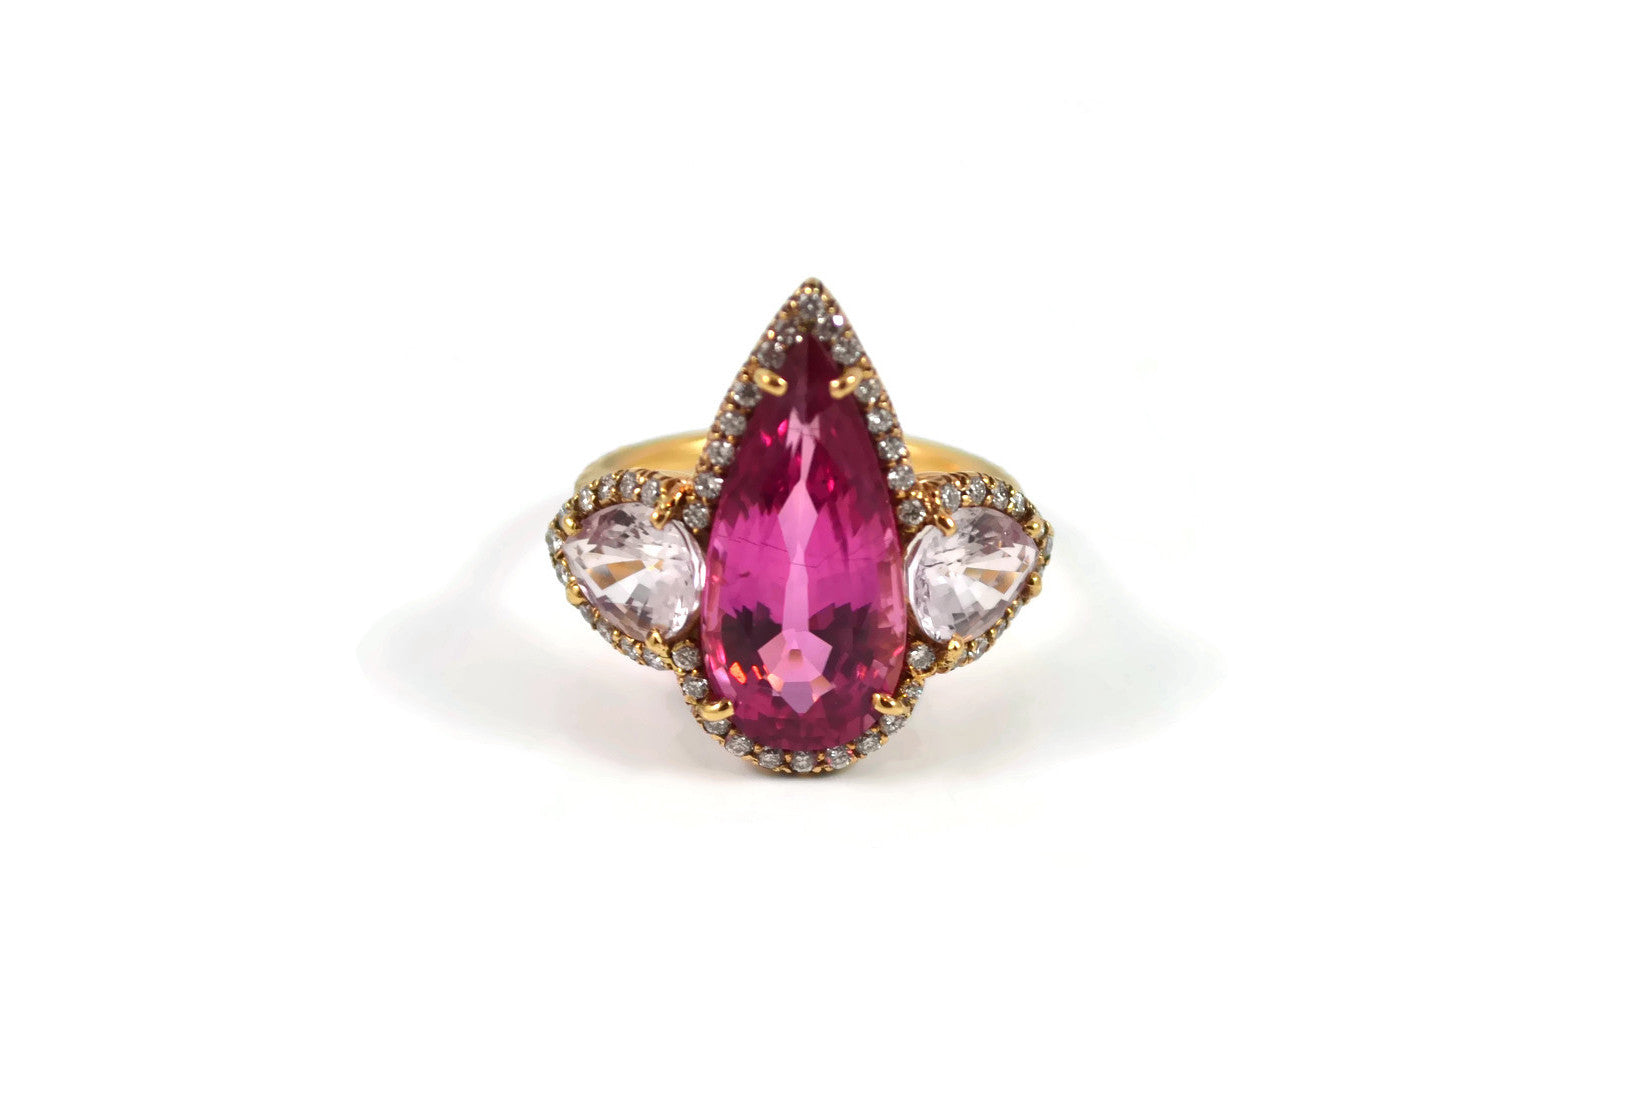 AF Collection One of Kind Rubellite, Morganite and Diamonds Ring, 18k Rose Gold.